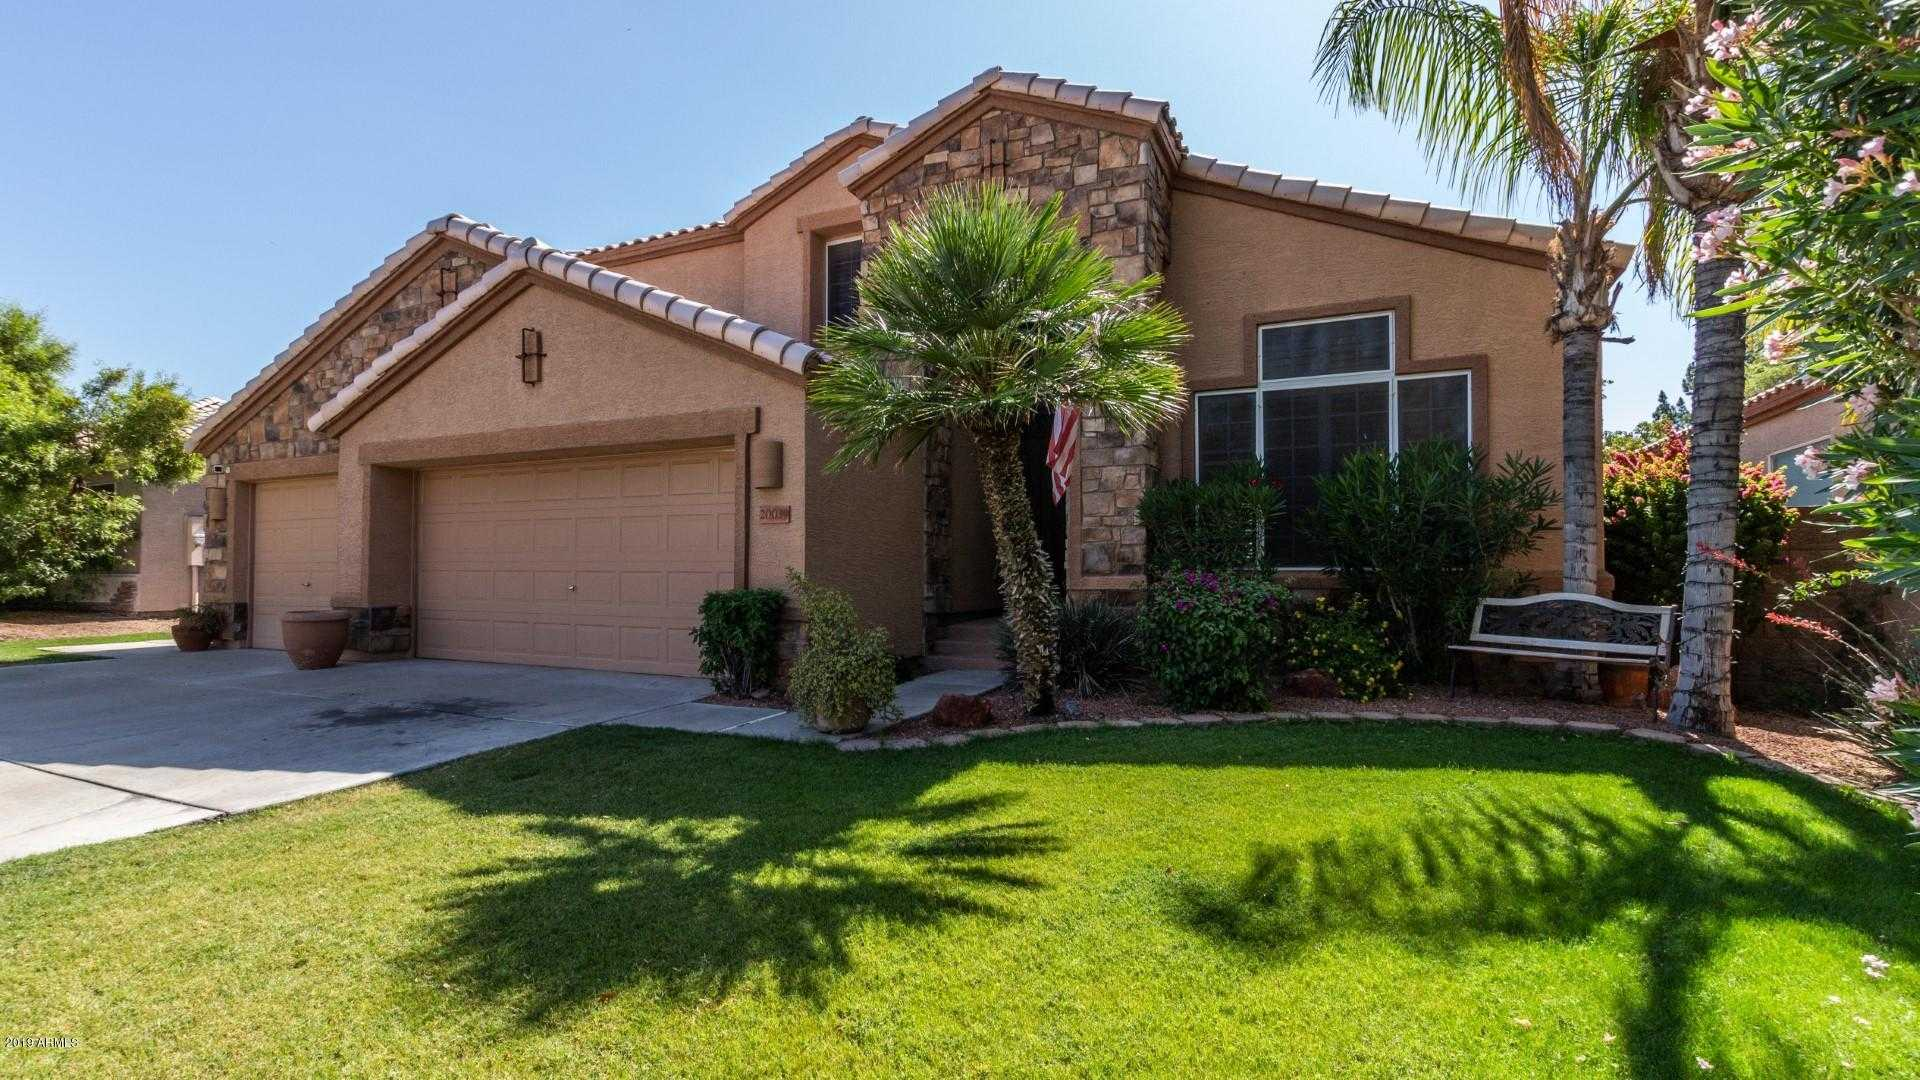 $379,900 - 4Br/3Ba - Home for Sale in Arrowhead Heights, Glendale